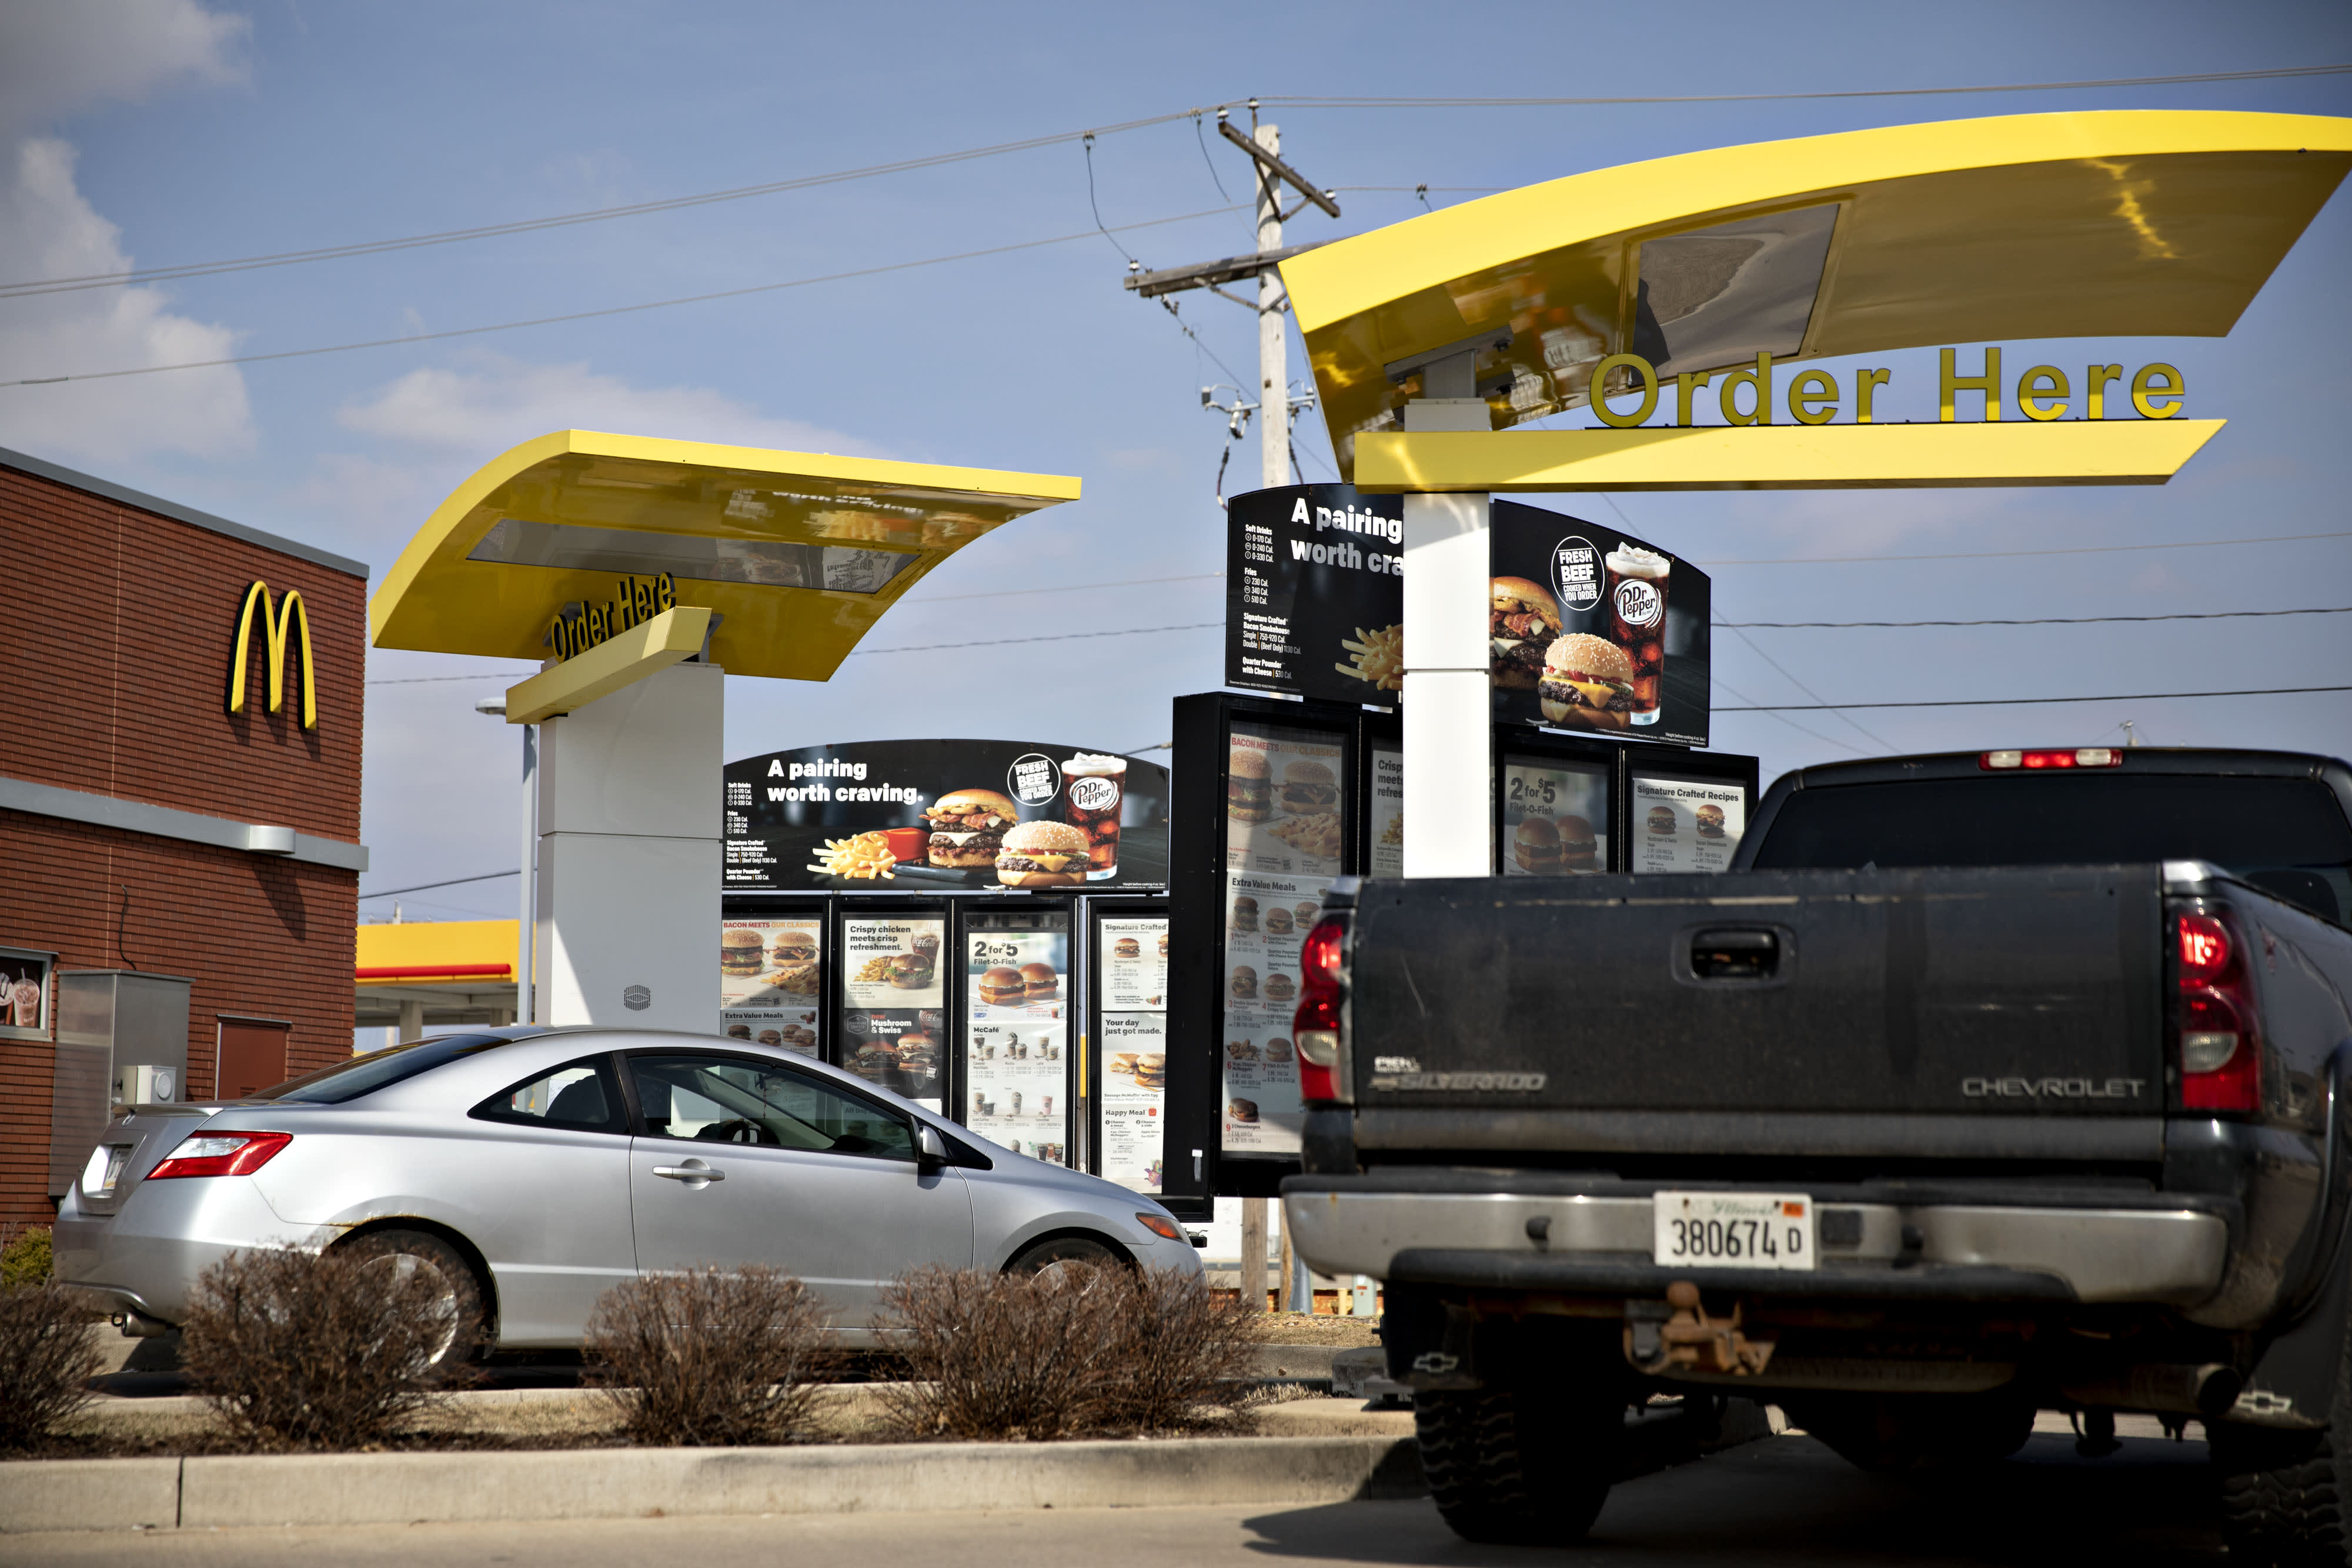 McDonald's is testing automated drive-thru ordering at 10 Chicago restaurants